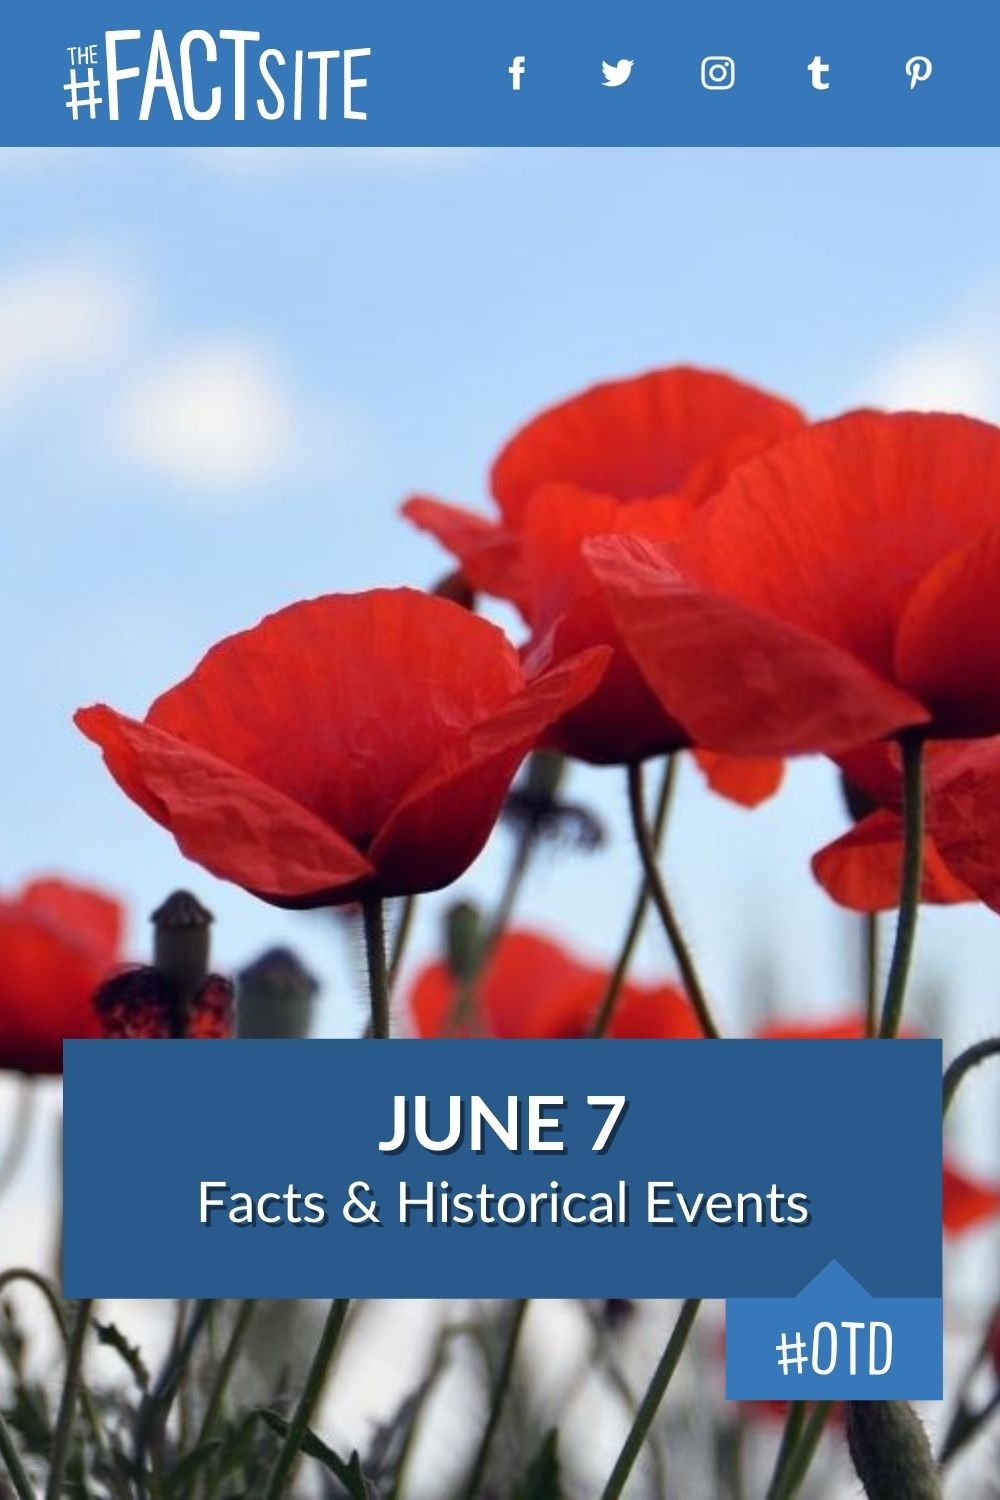 Facts & Historic Events That Happened on June 7